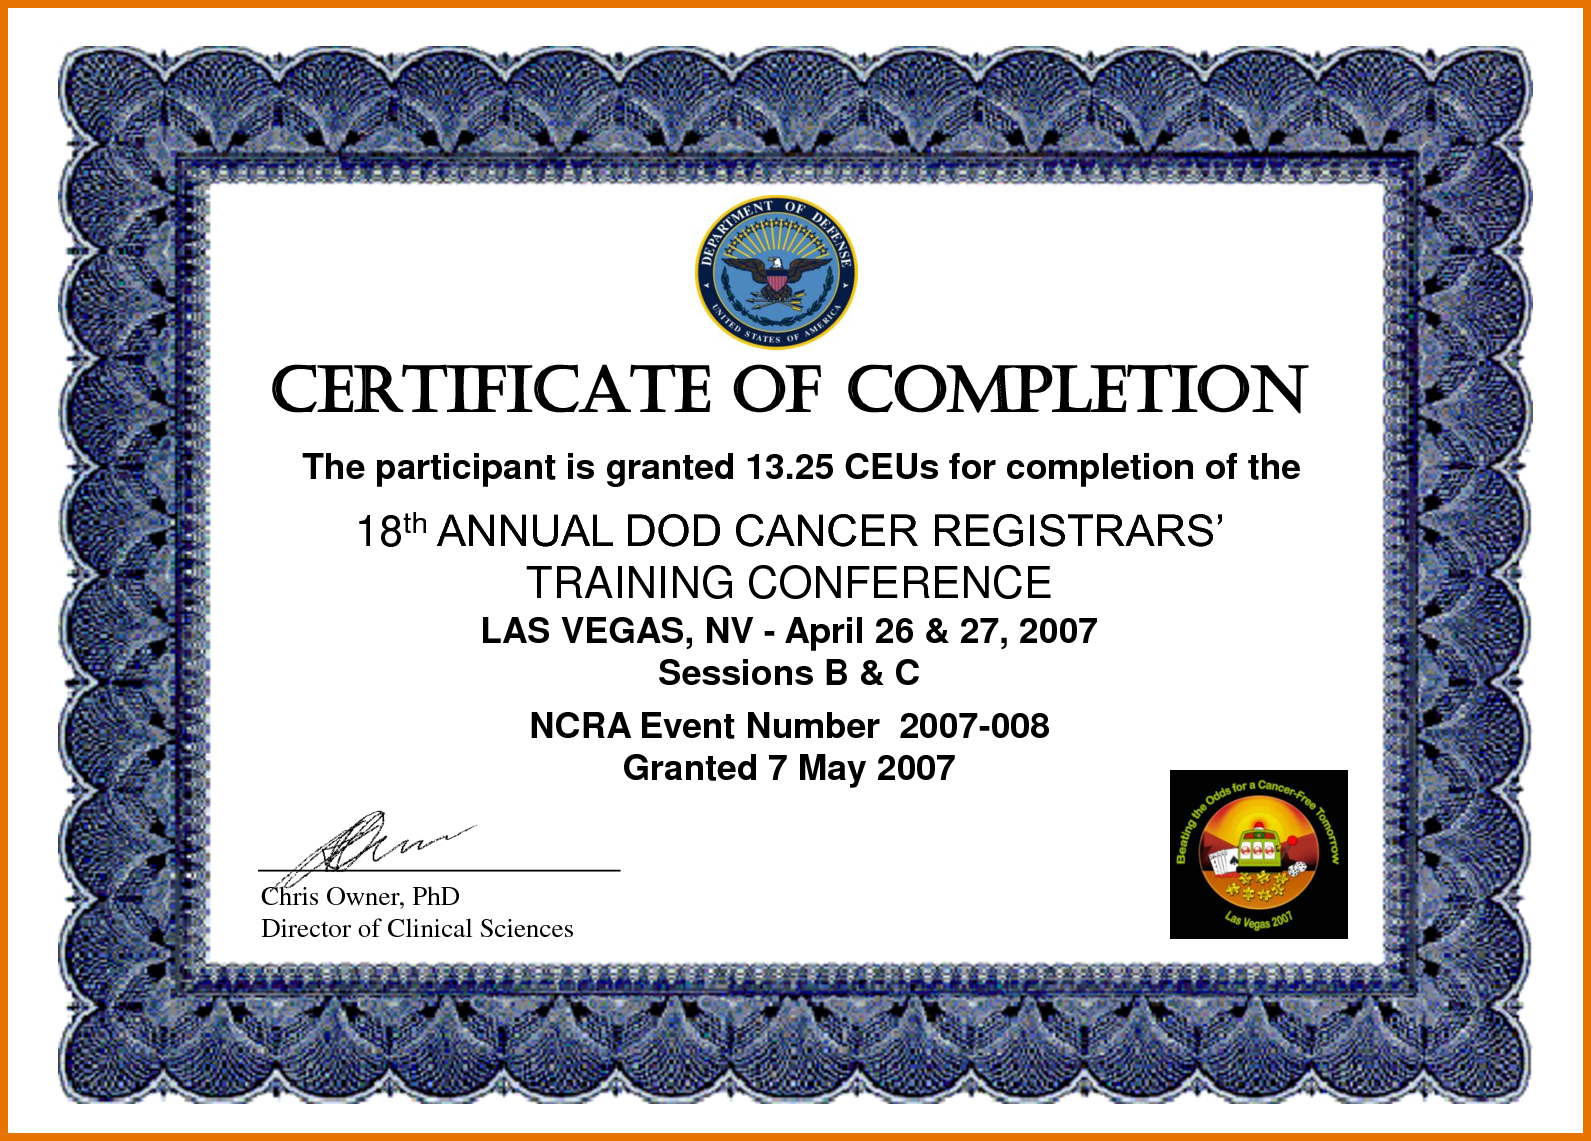 Training Certificate Sample Training Certificate Templates For Word With Regard To Free Training Completion Certificate Templates